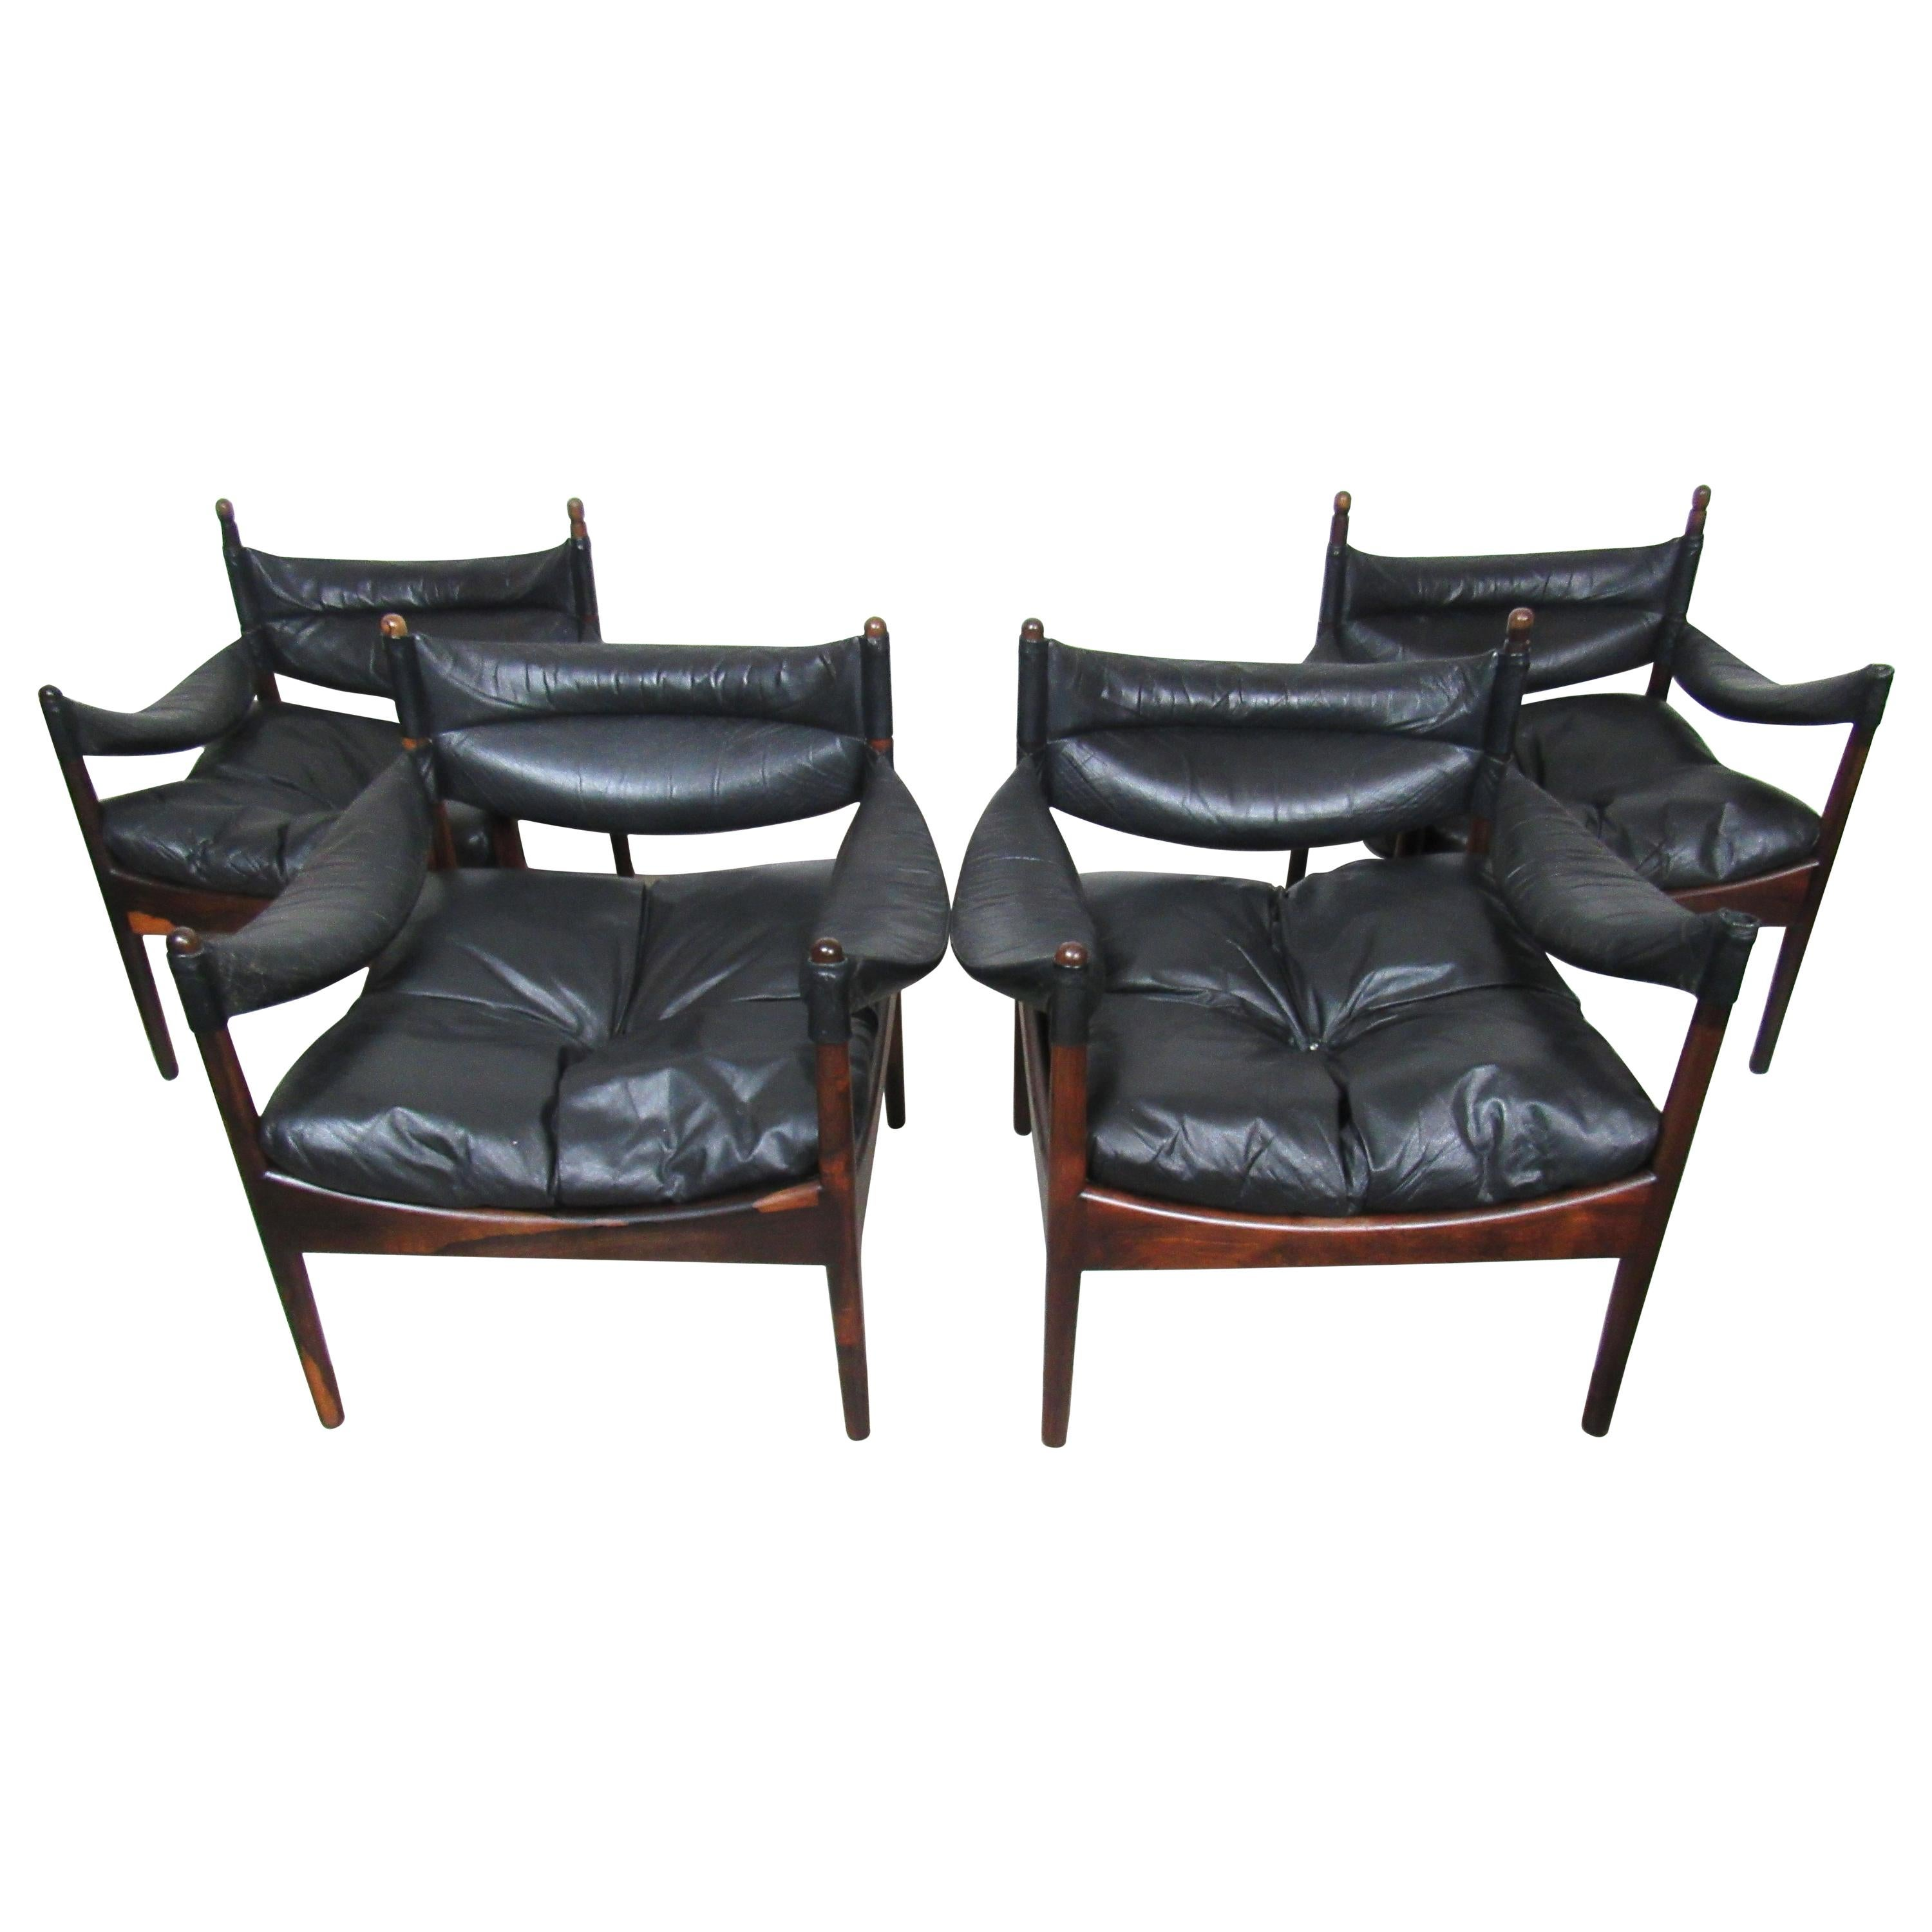 Kristian Solmer Vedel 'Modus' Lounge Chairs